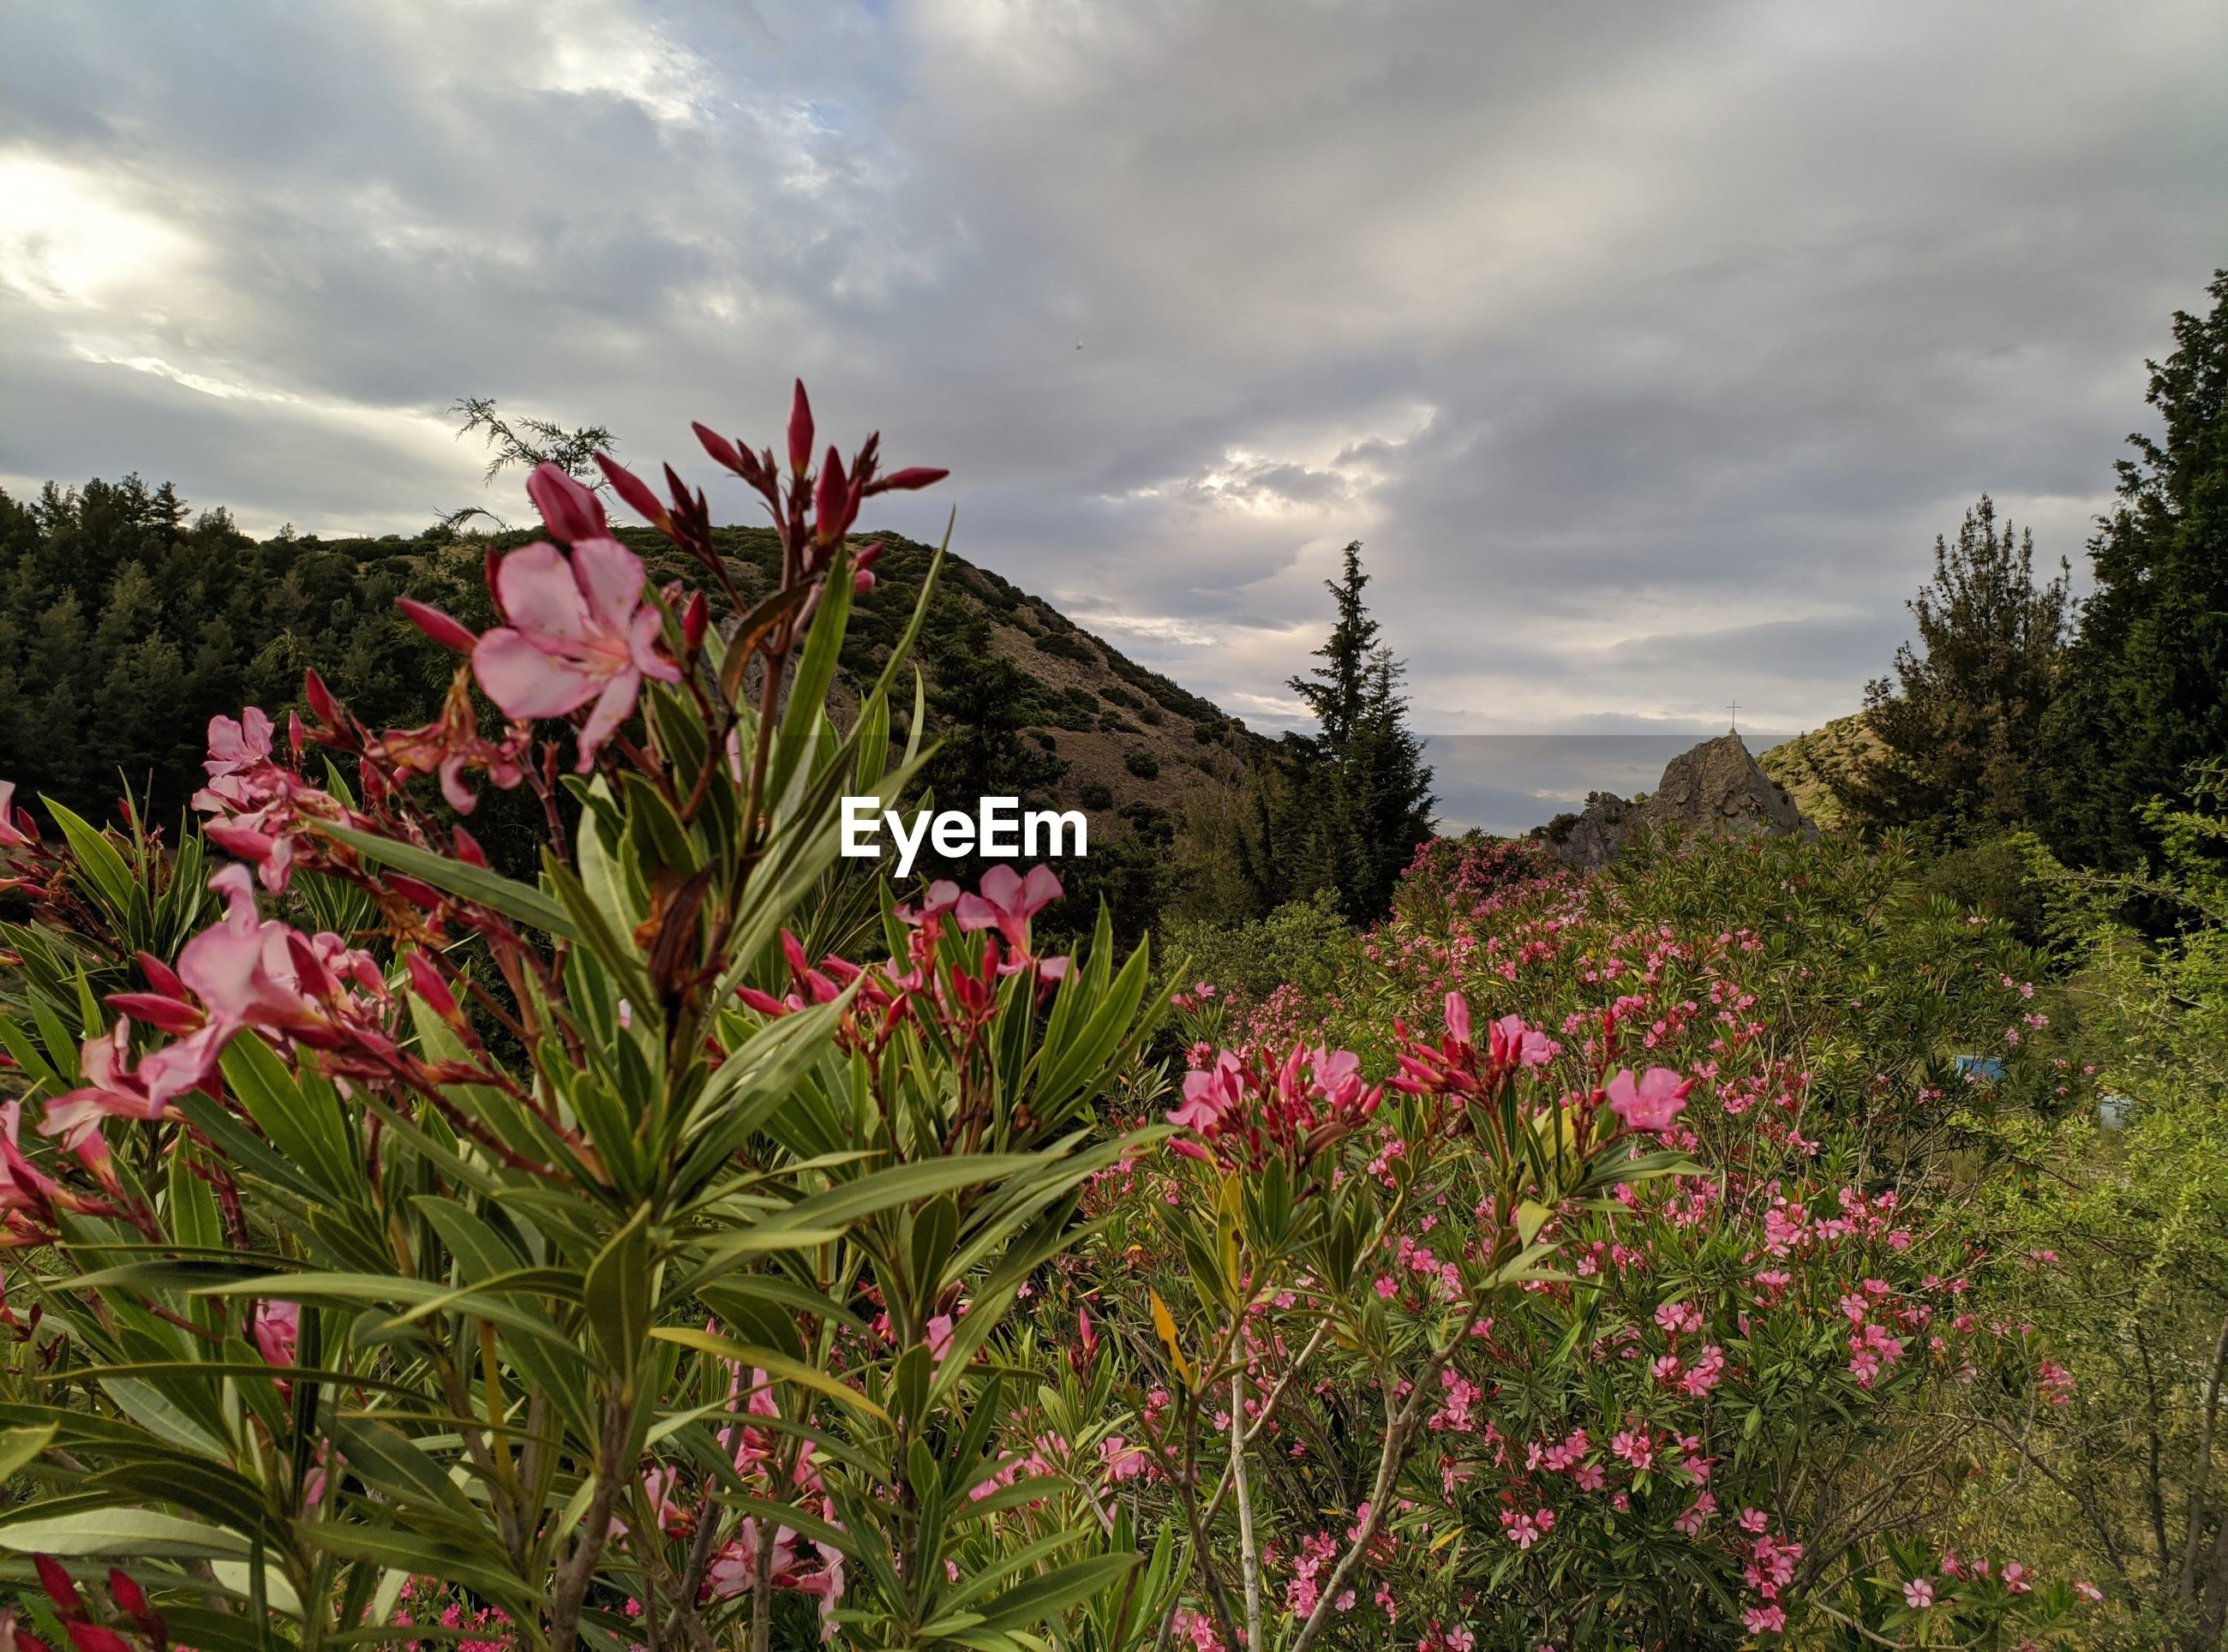 PINK FLOWERING PLANTS AGAINST TREES AND SKY